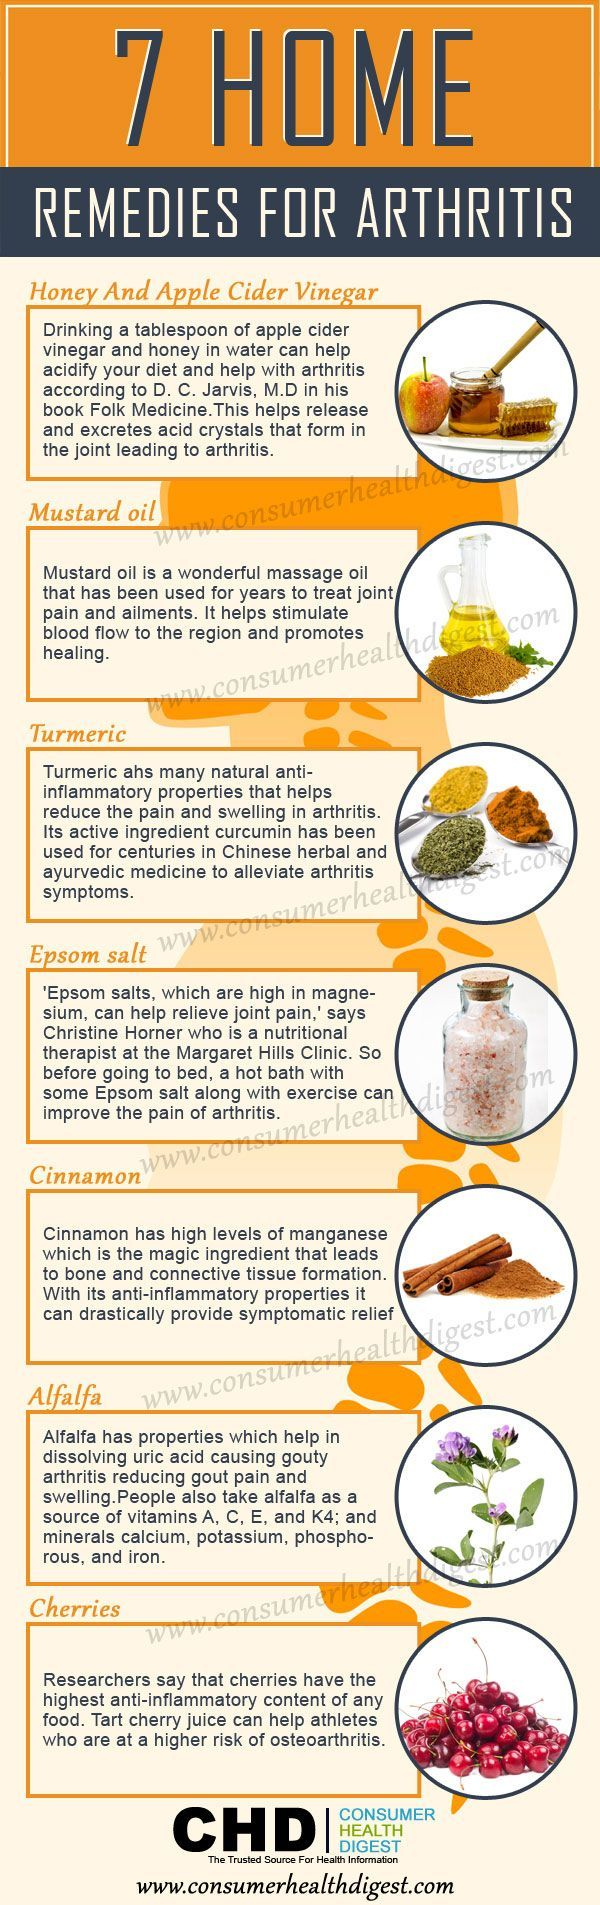 Treat painful arthritis with natural solutions such as cherries. All the items on this infographic are all natural.